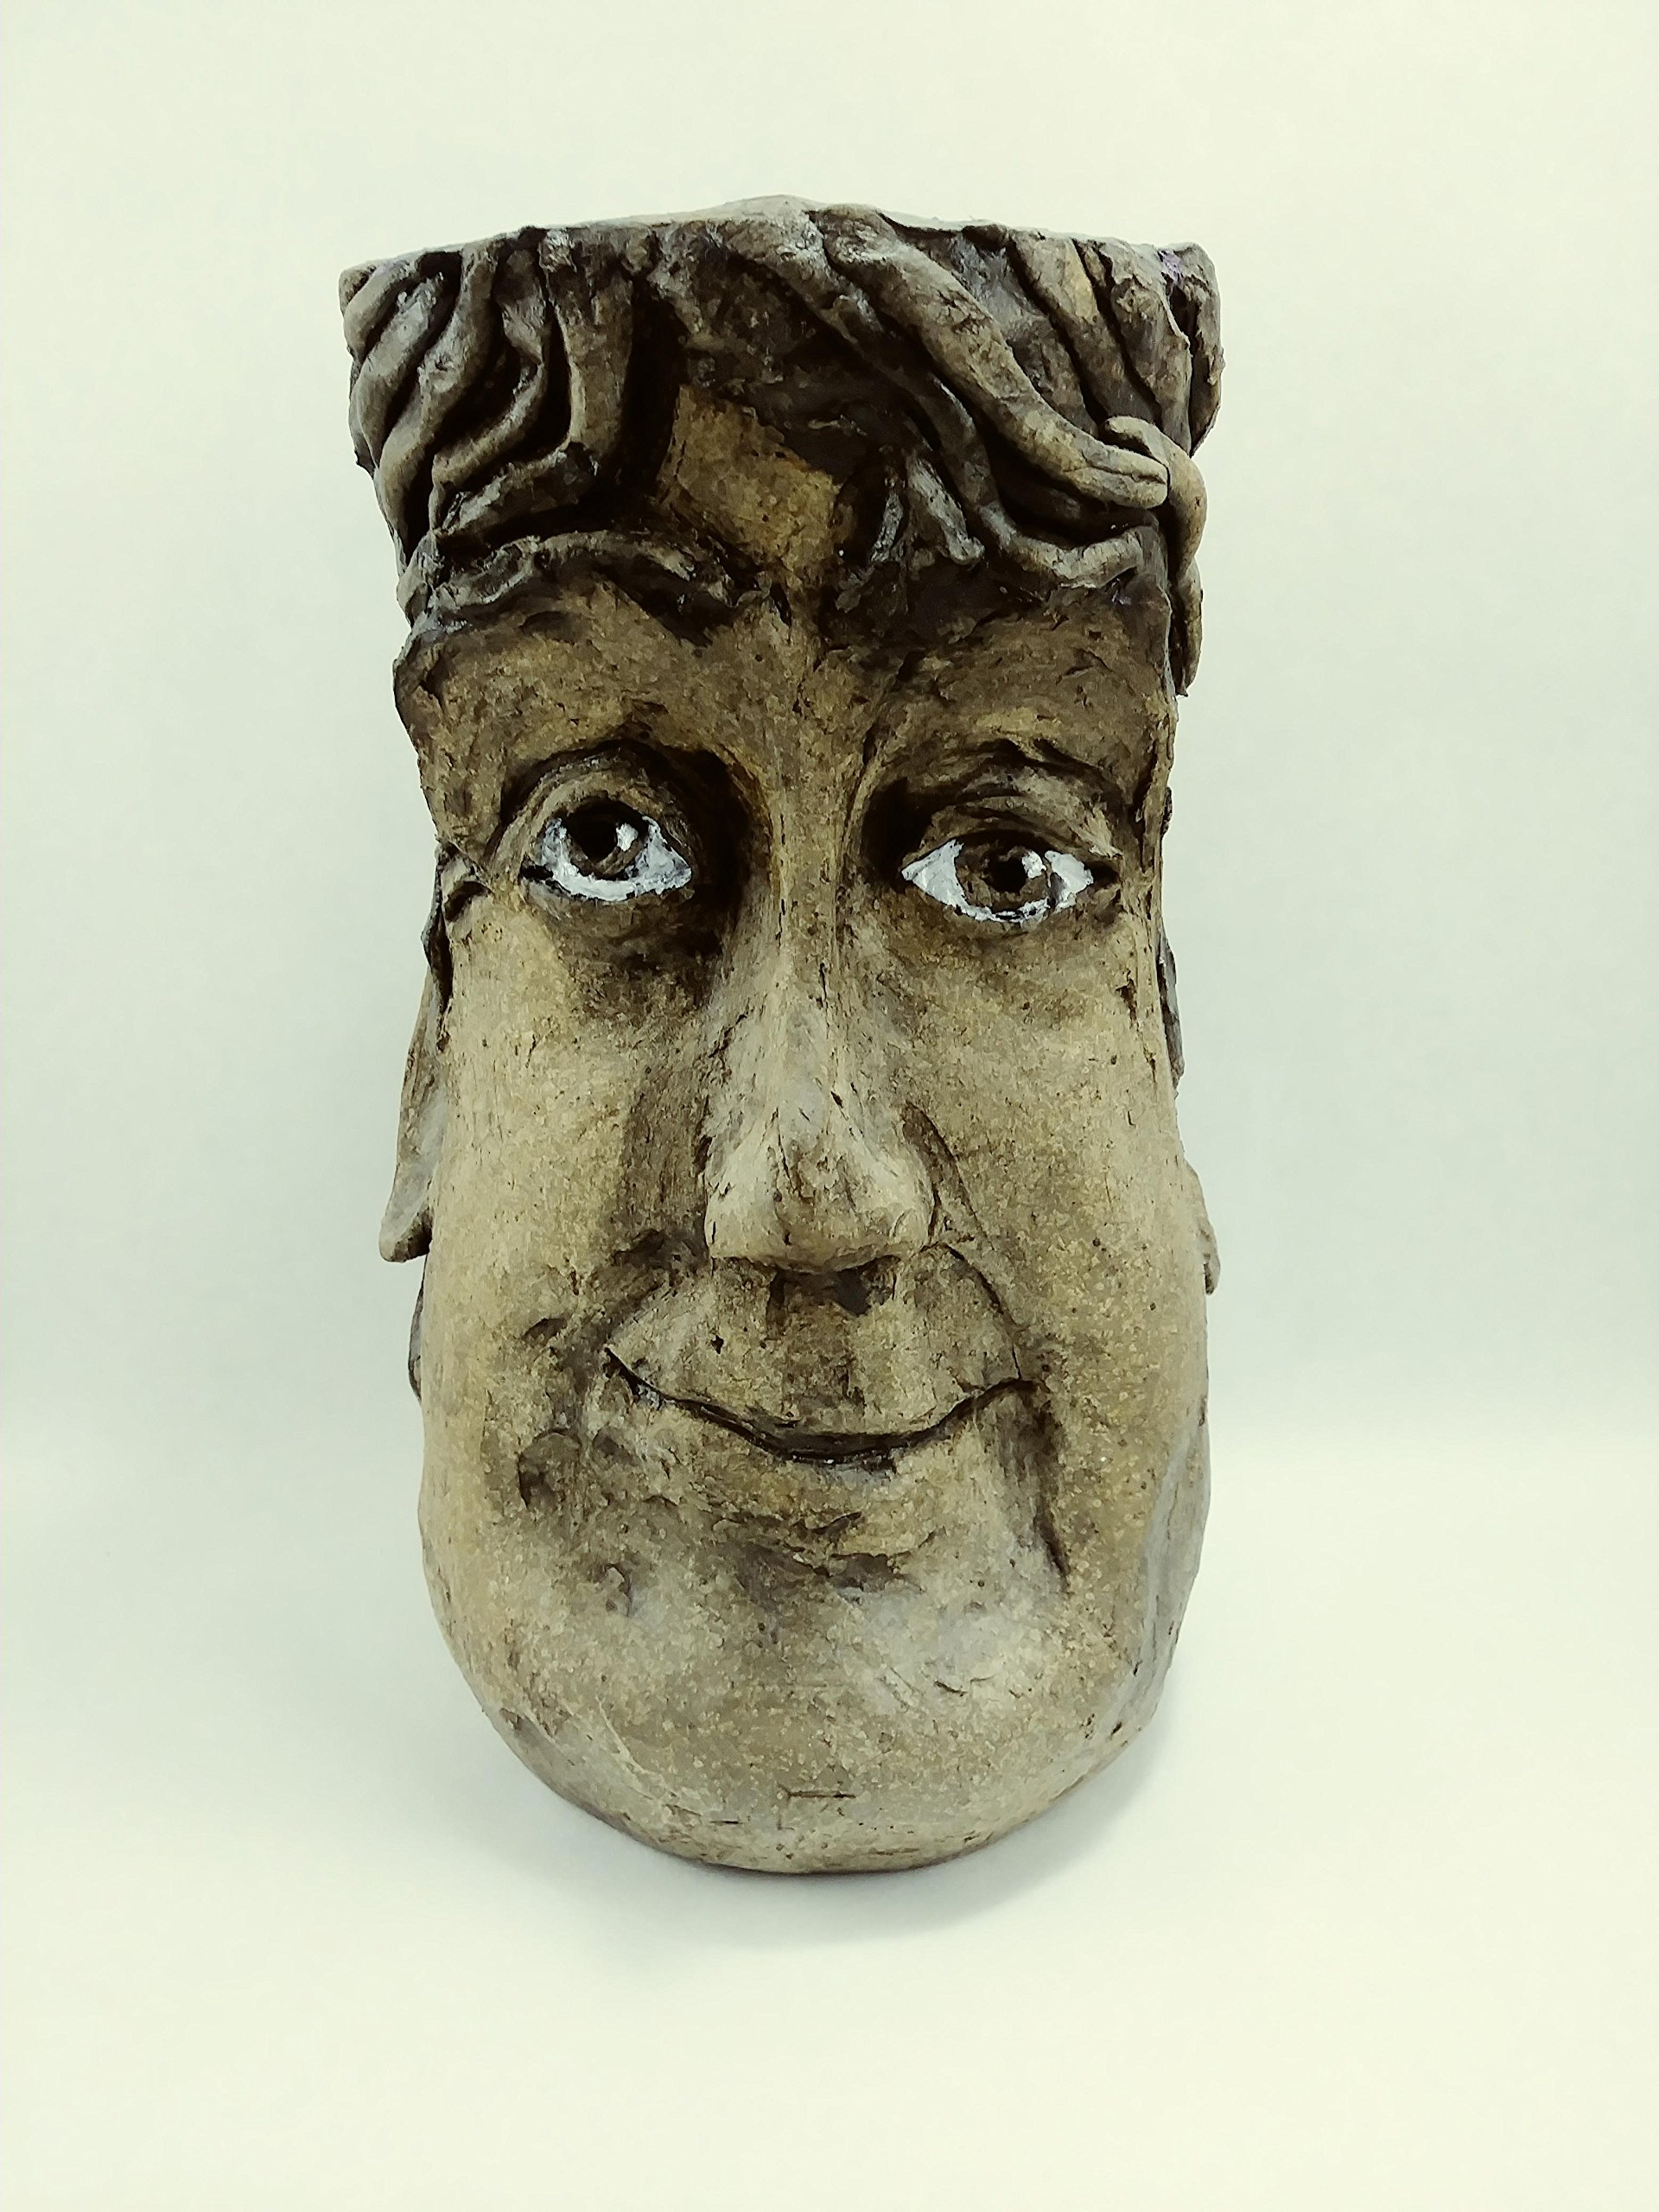 Aunt Chris' Pottery - ''Paul'' Face Vase - Heavy Head Pot - Hand Crafted Style - Dark Brown Hair - Rustic Stone Finish - When Sold There Will Not Be Another Like It!